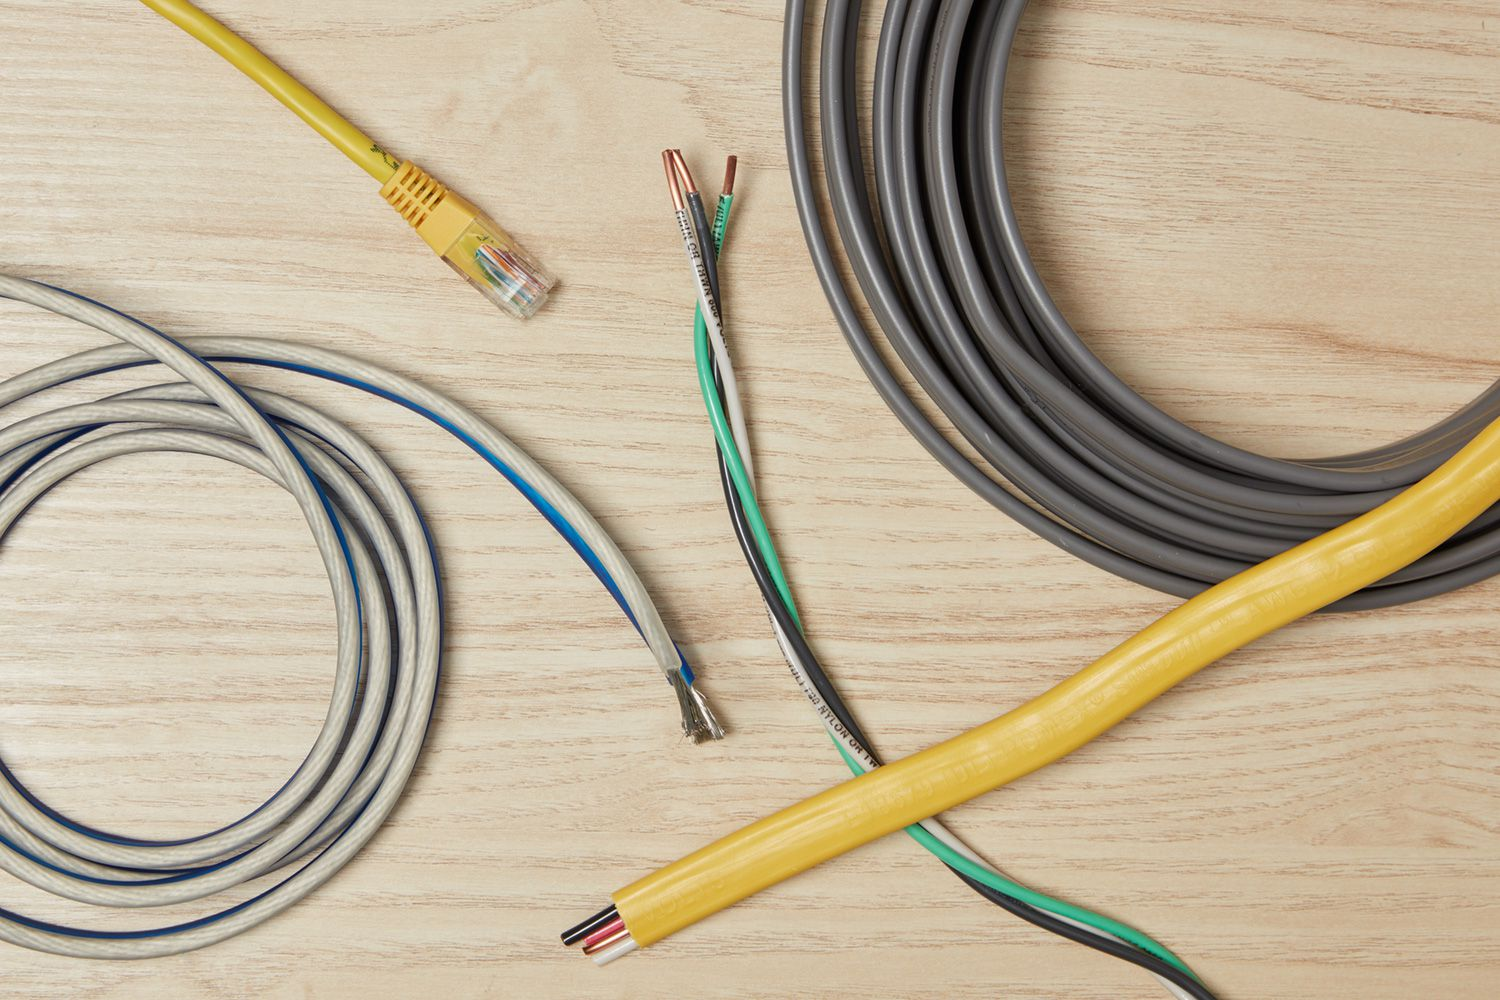 Common Types of Electrical Wire Used in Homes | Home Electrical Wiring Sizes |  | The Spruce